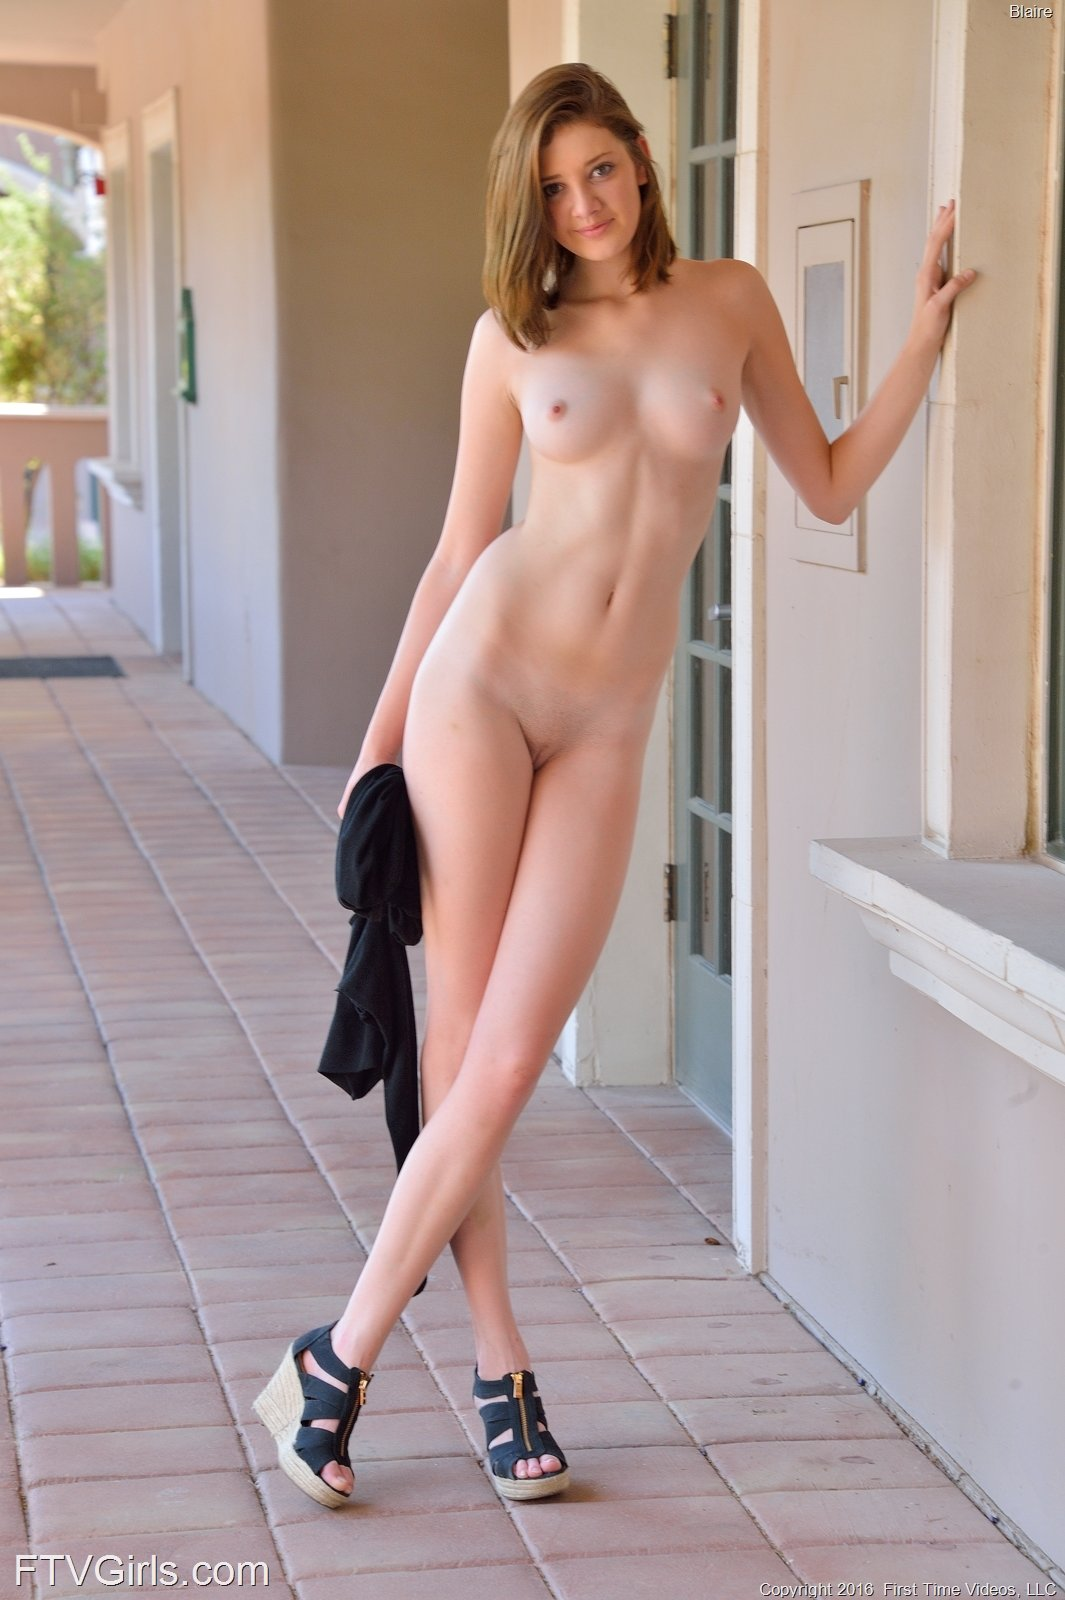 Pictures of extremely tall naked girls 5